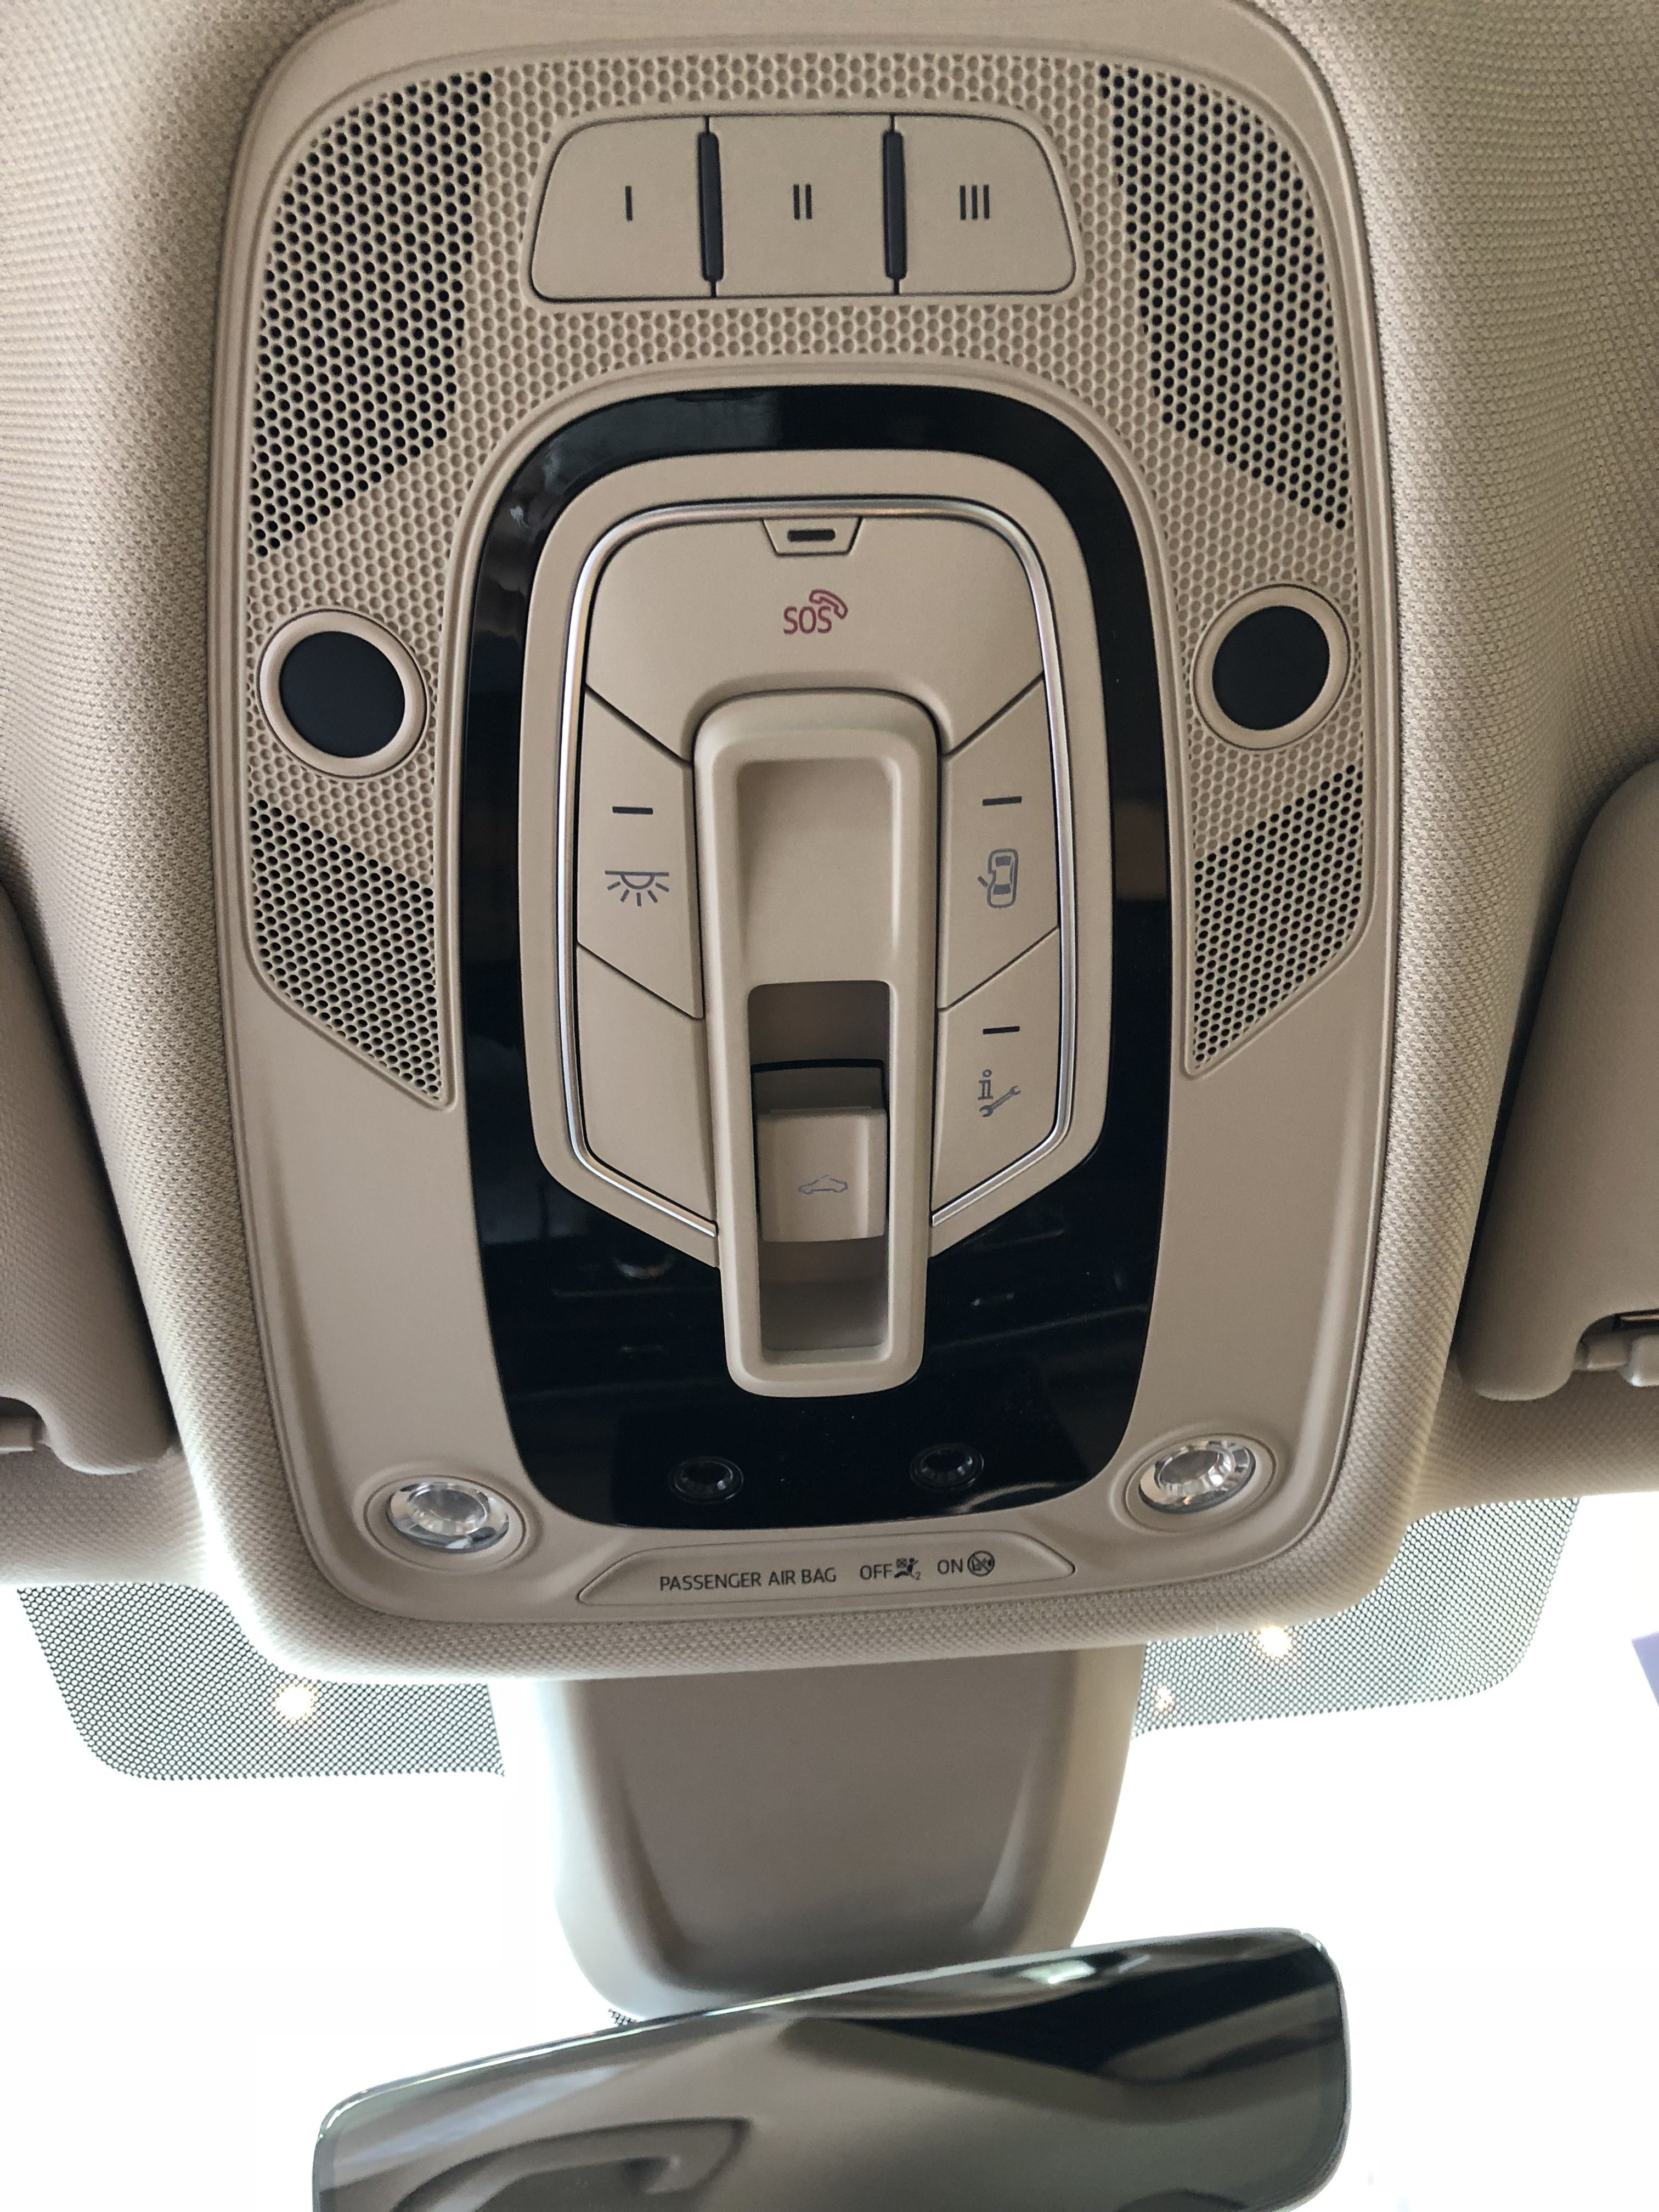 View of moon roof and interior light control panel on tan interior